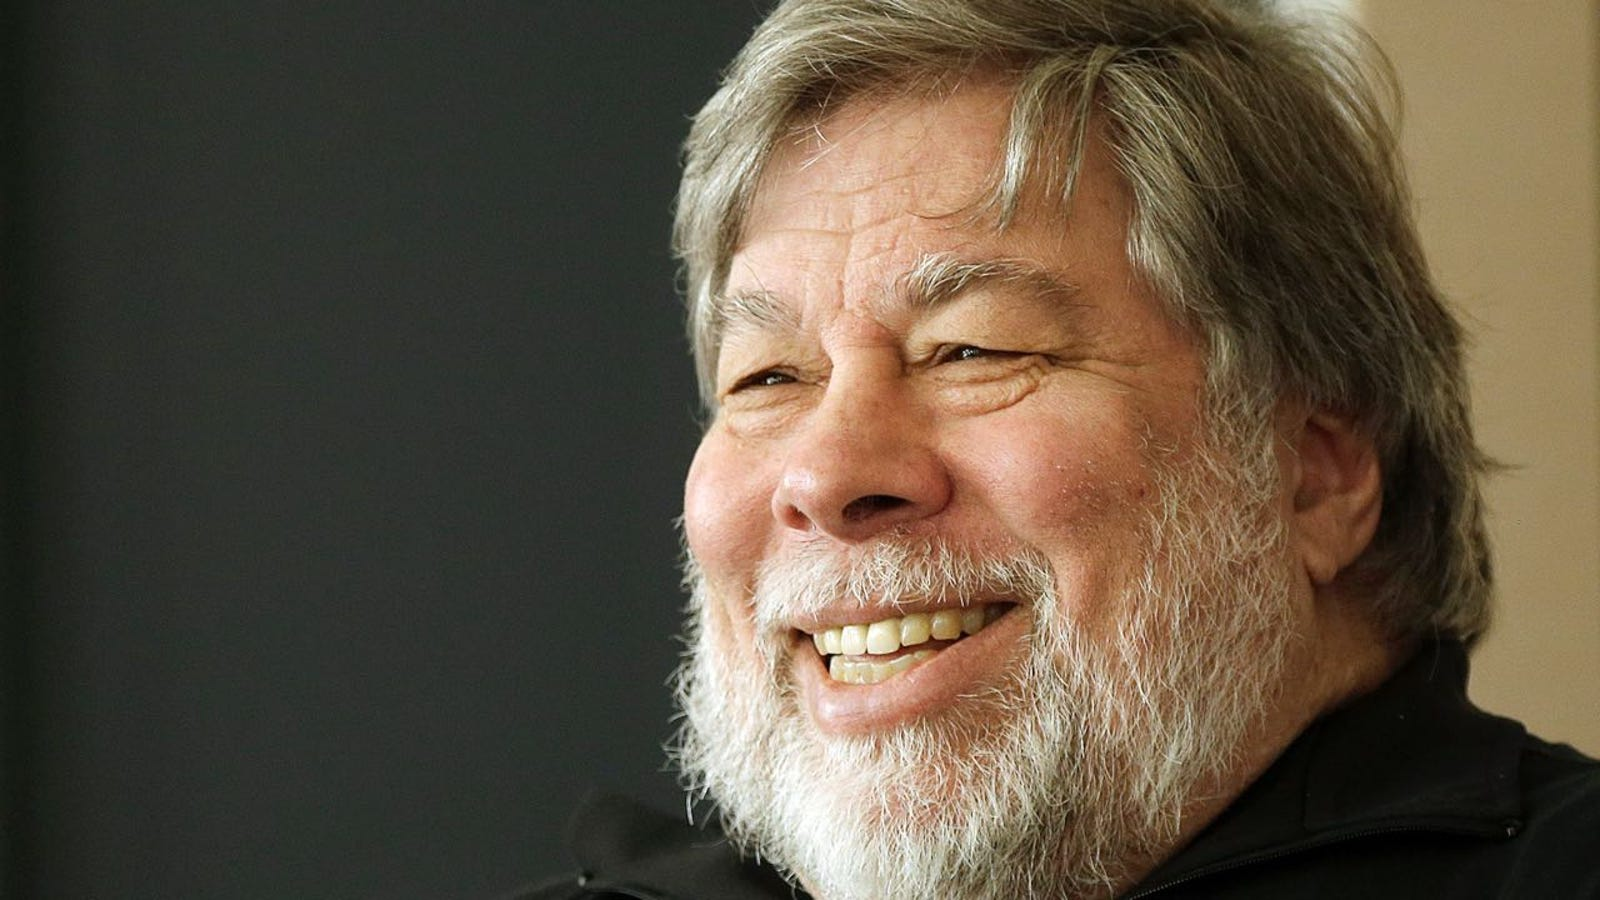 sony earbuds tips - Woz to Apple: You Don't Know Jack